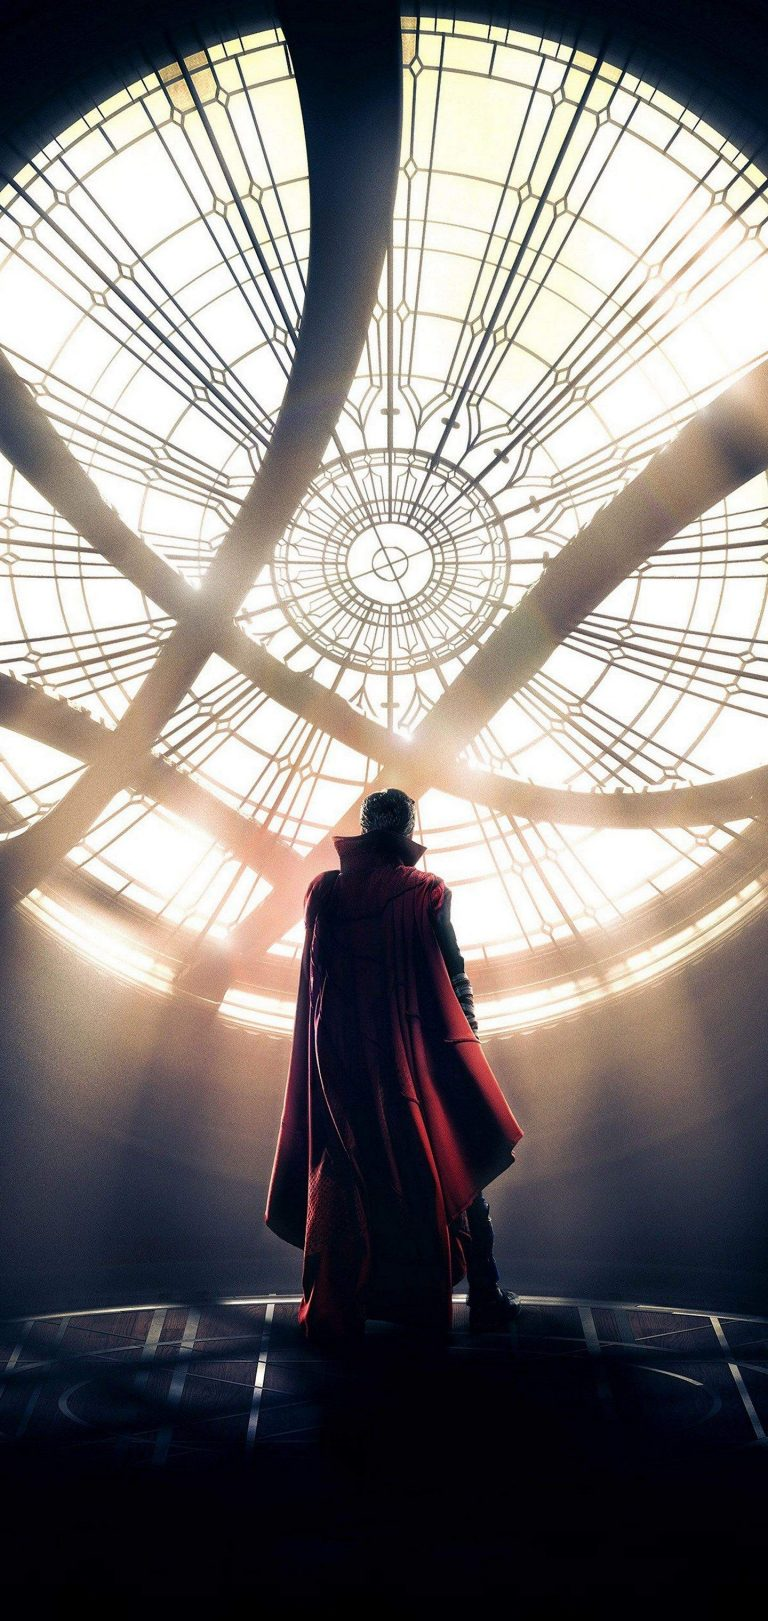 Doctor Strange Superhero Wallpaper 1440x3040 768x1621